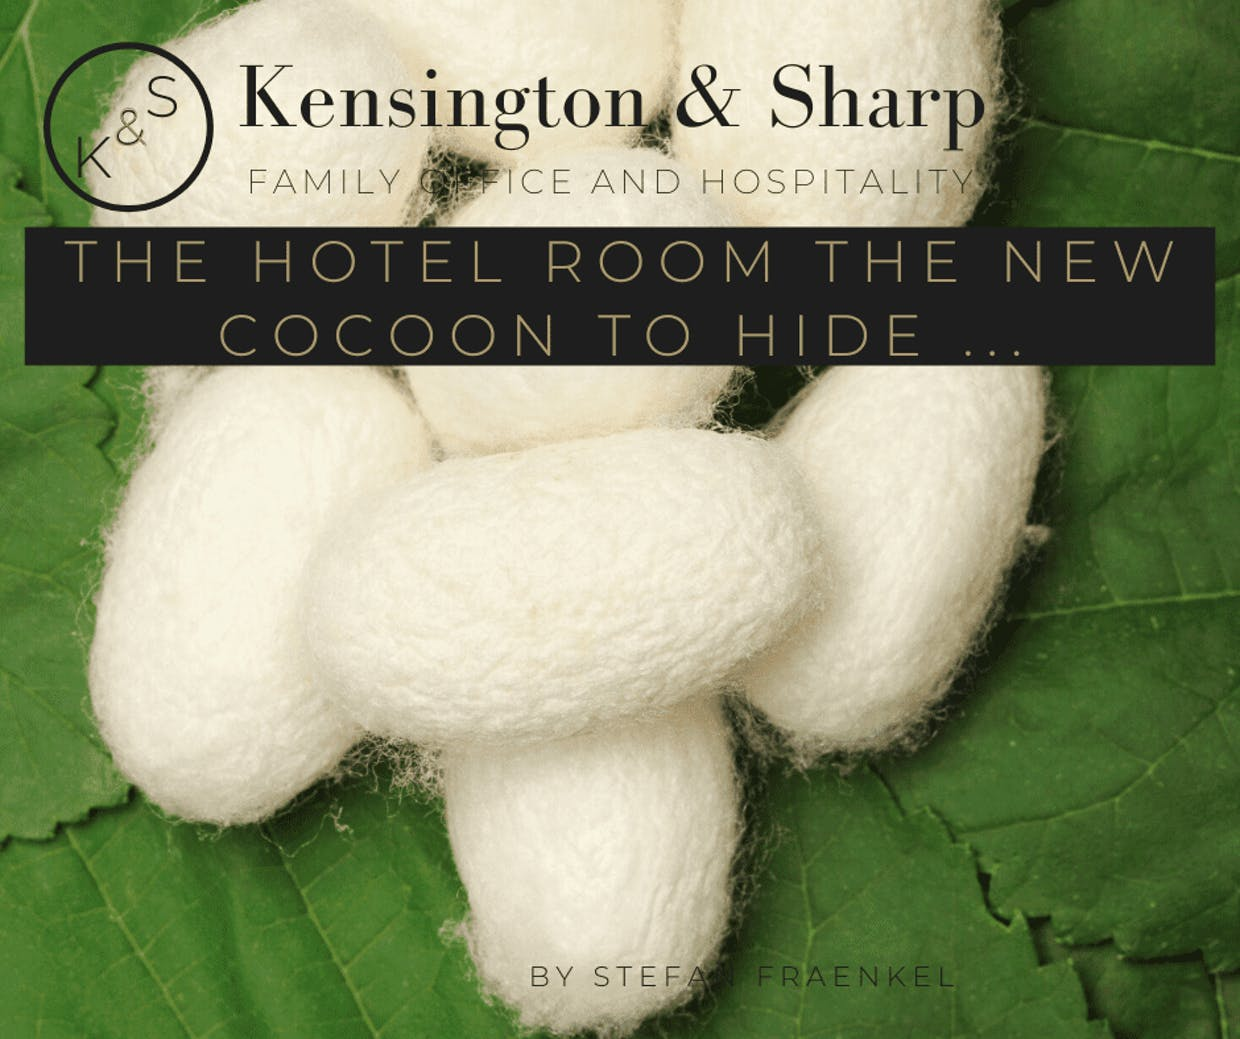 The hotel room the new cocoon to hide ... By Stefan FRAENKEL